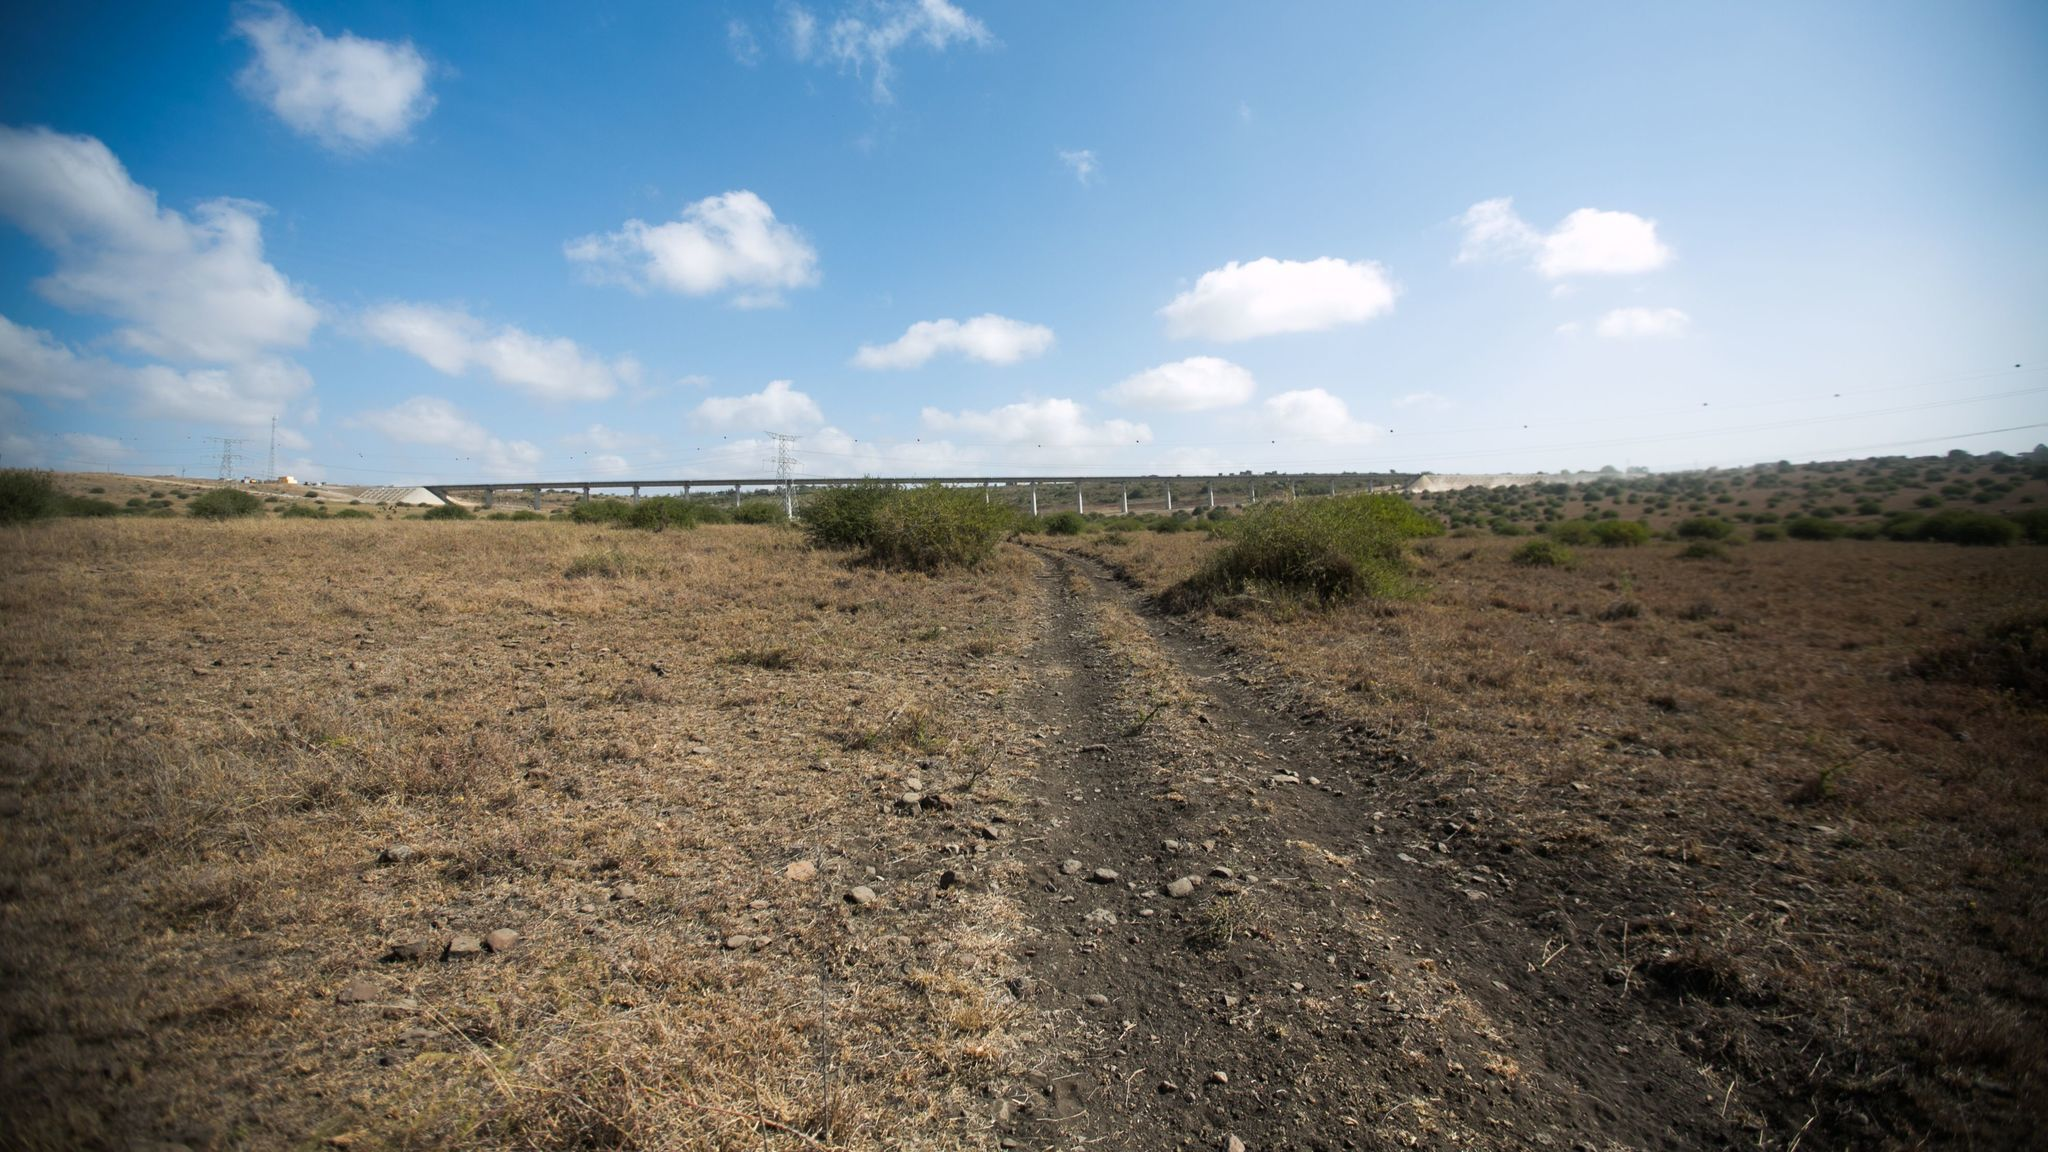 The Chinese-funded railway in Kenya from Nairobi to Mombasa cuts through part of the Nairobi National Park.